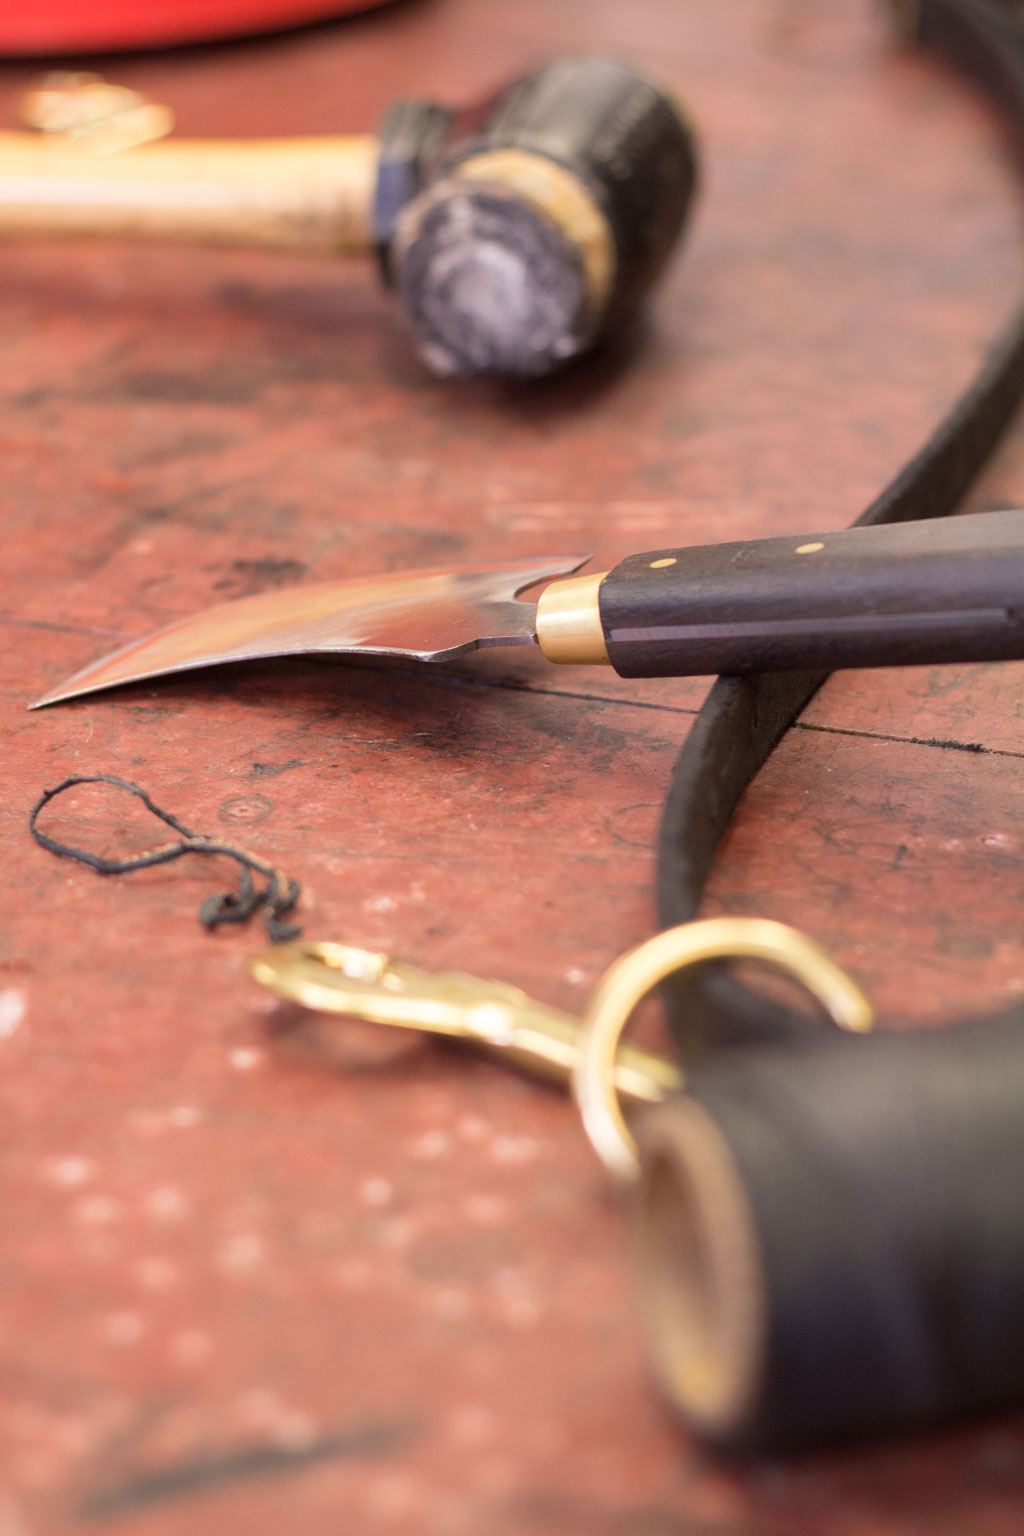 Leather tack and tools, Mark Markley photograph